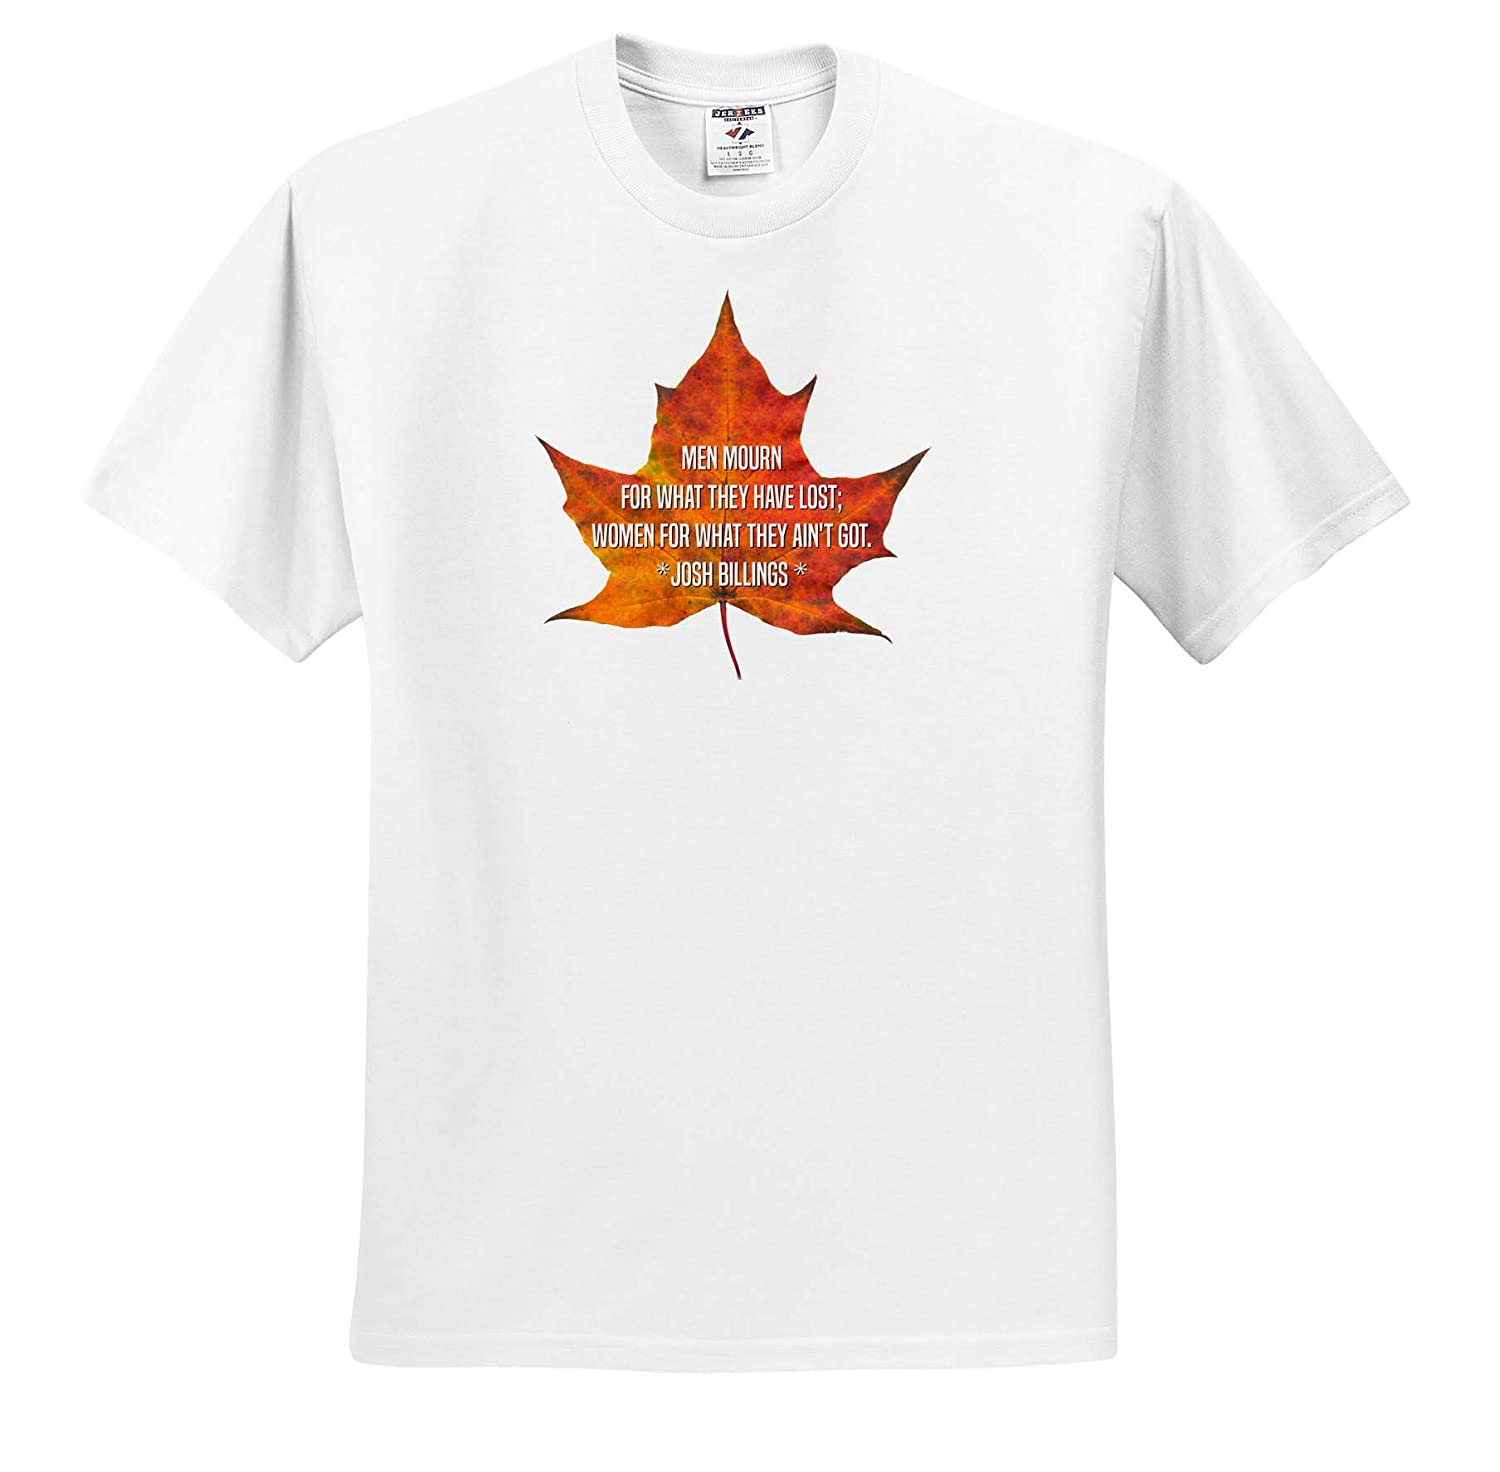 Quotes Josh Billing 3dRose Alexis Design Maple Leaf and The Text Men Mourn for What They Have Lost - T-Shirts Women